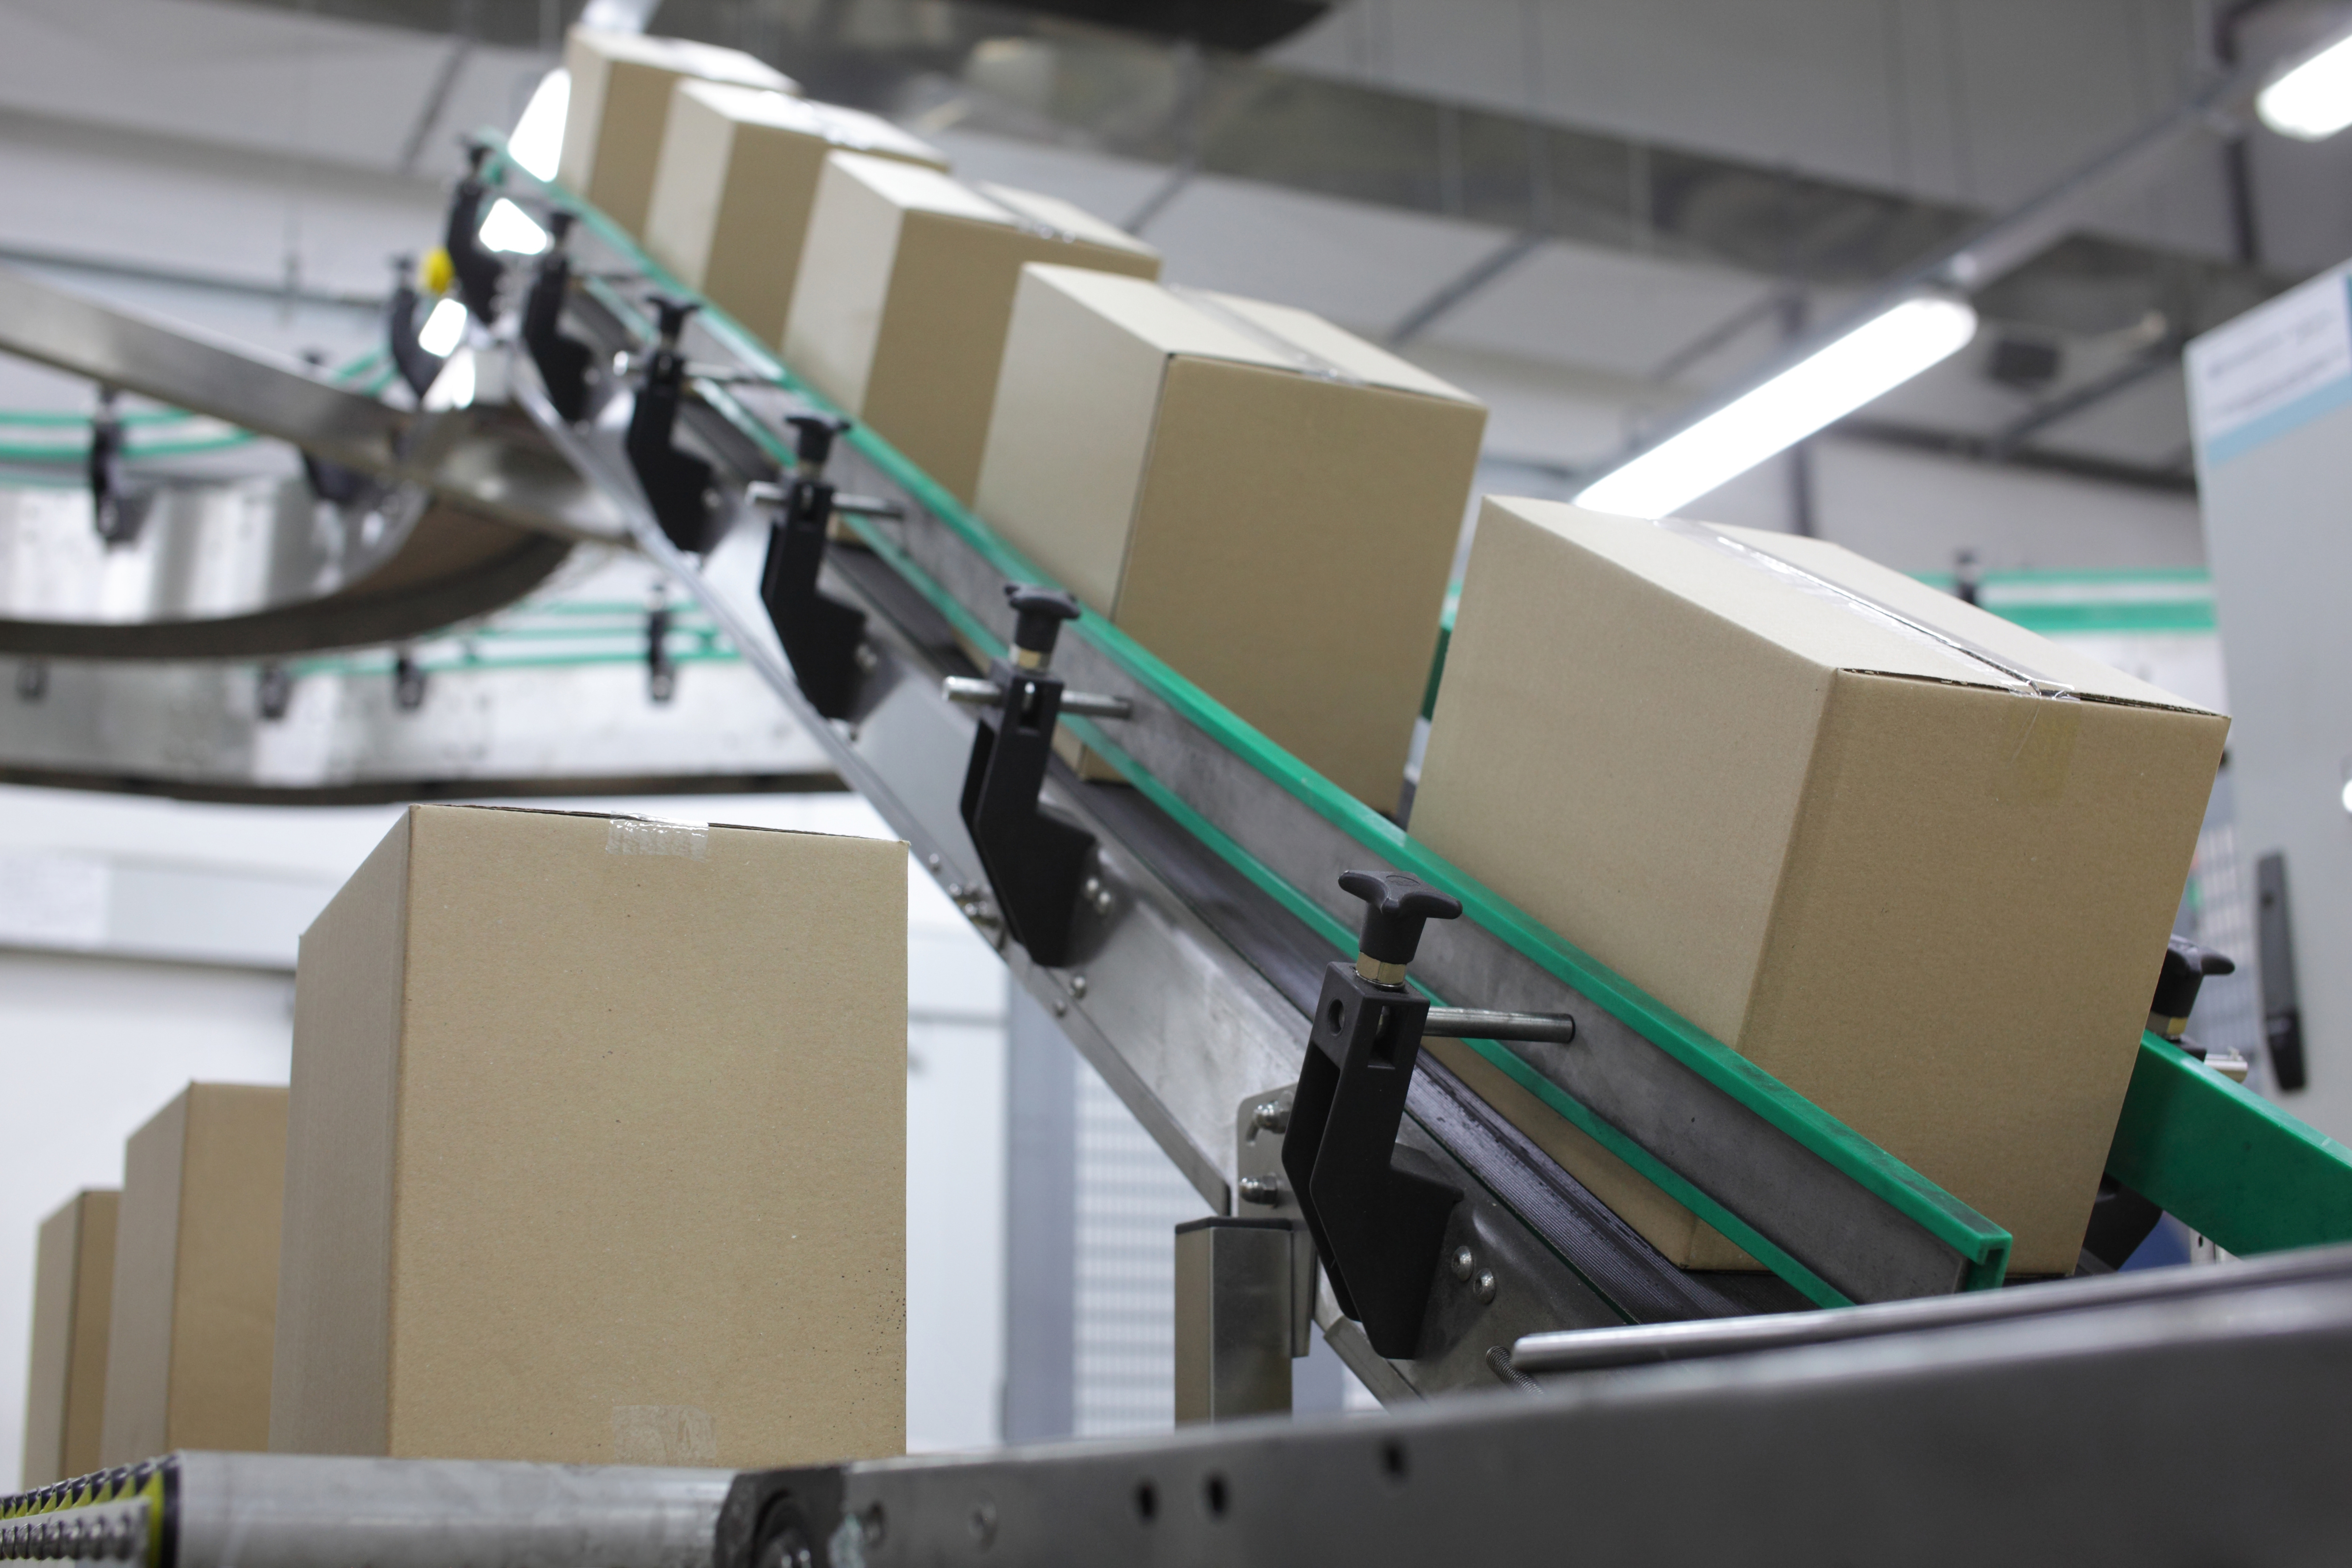 We work with manufacturers and distributors to get their products to the customer